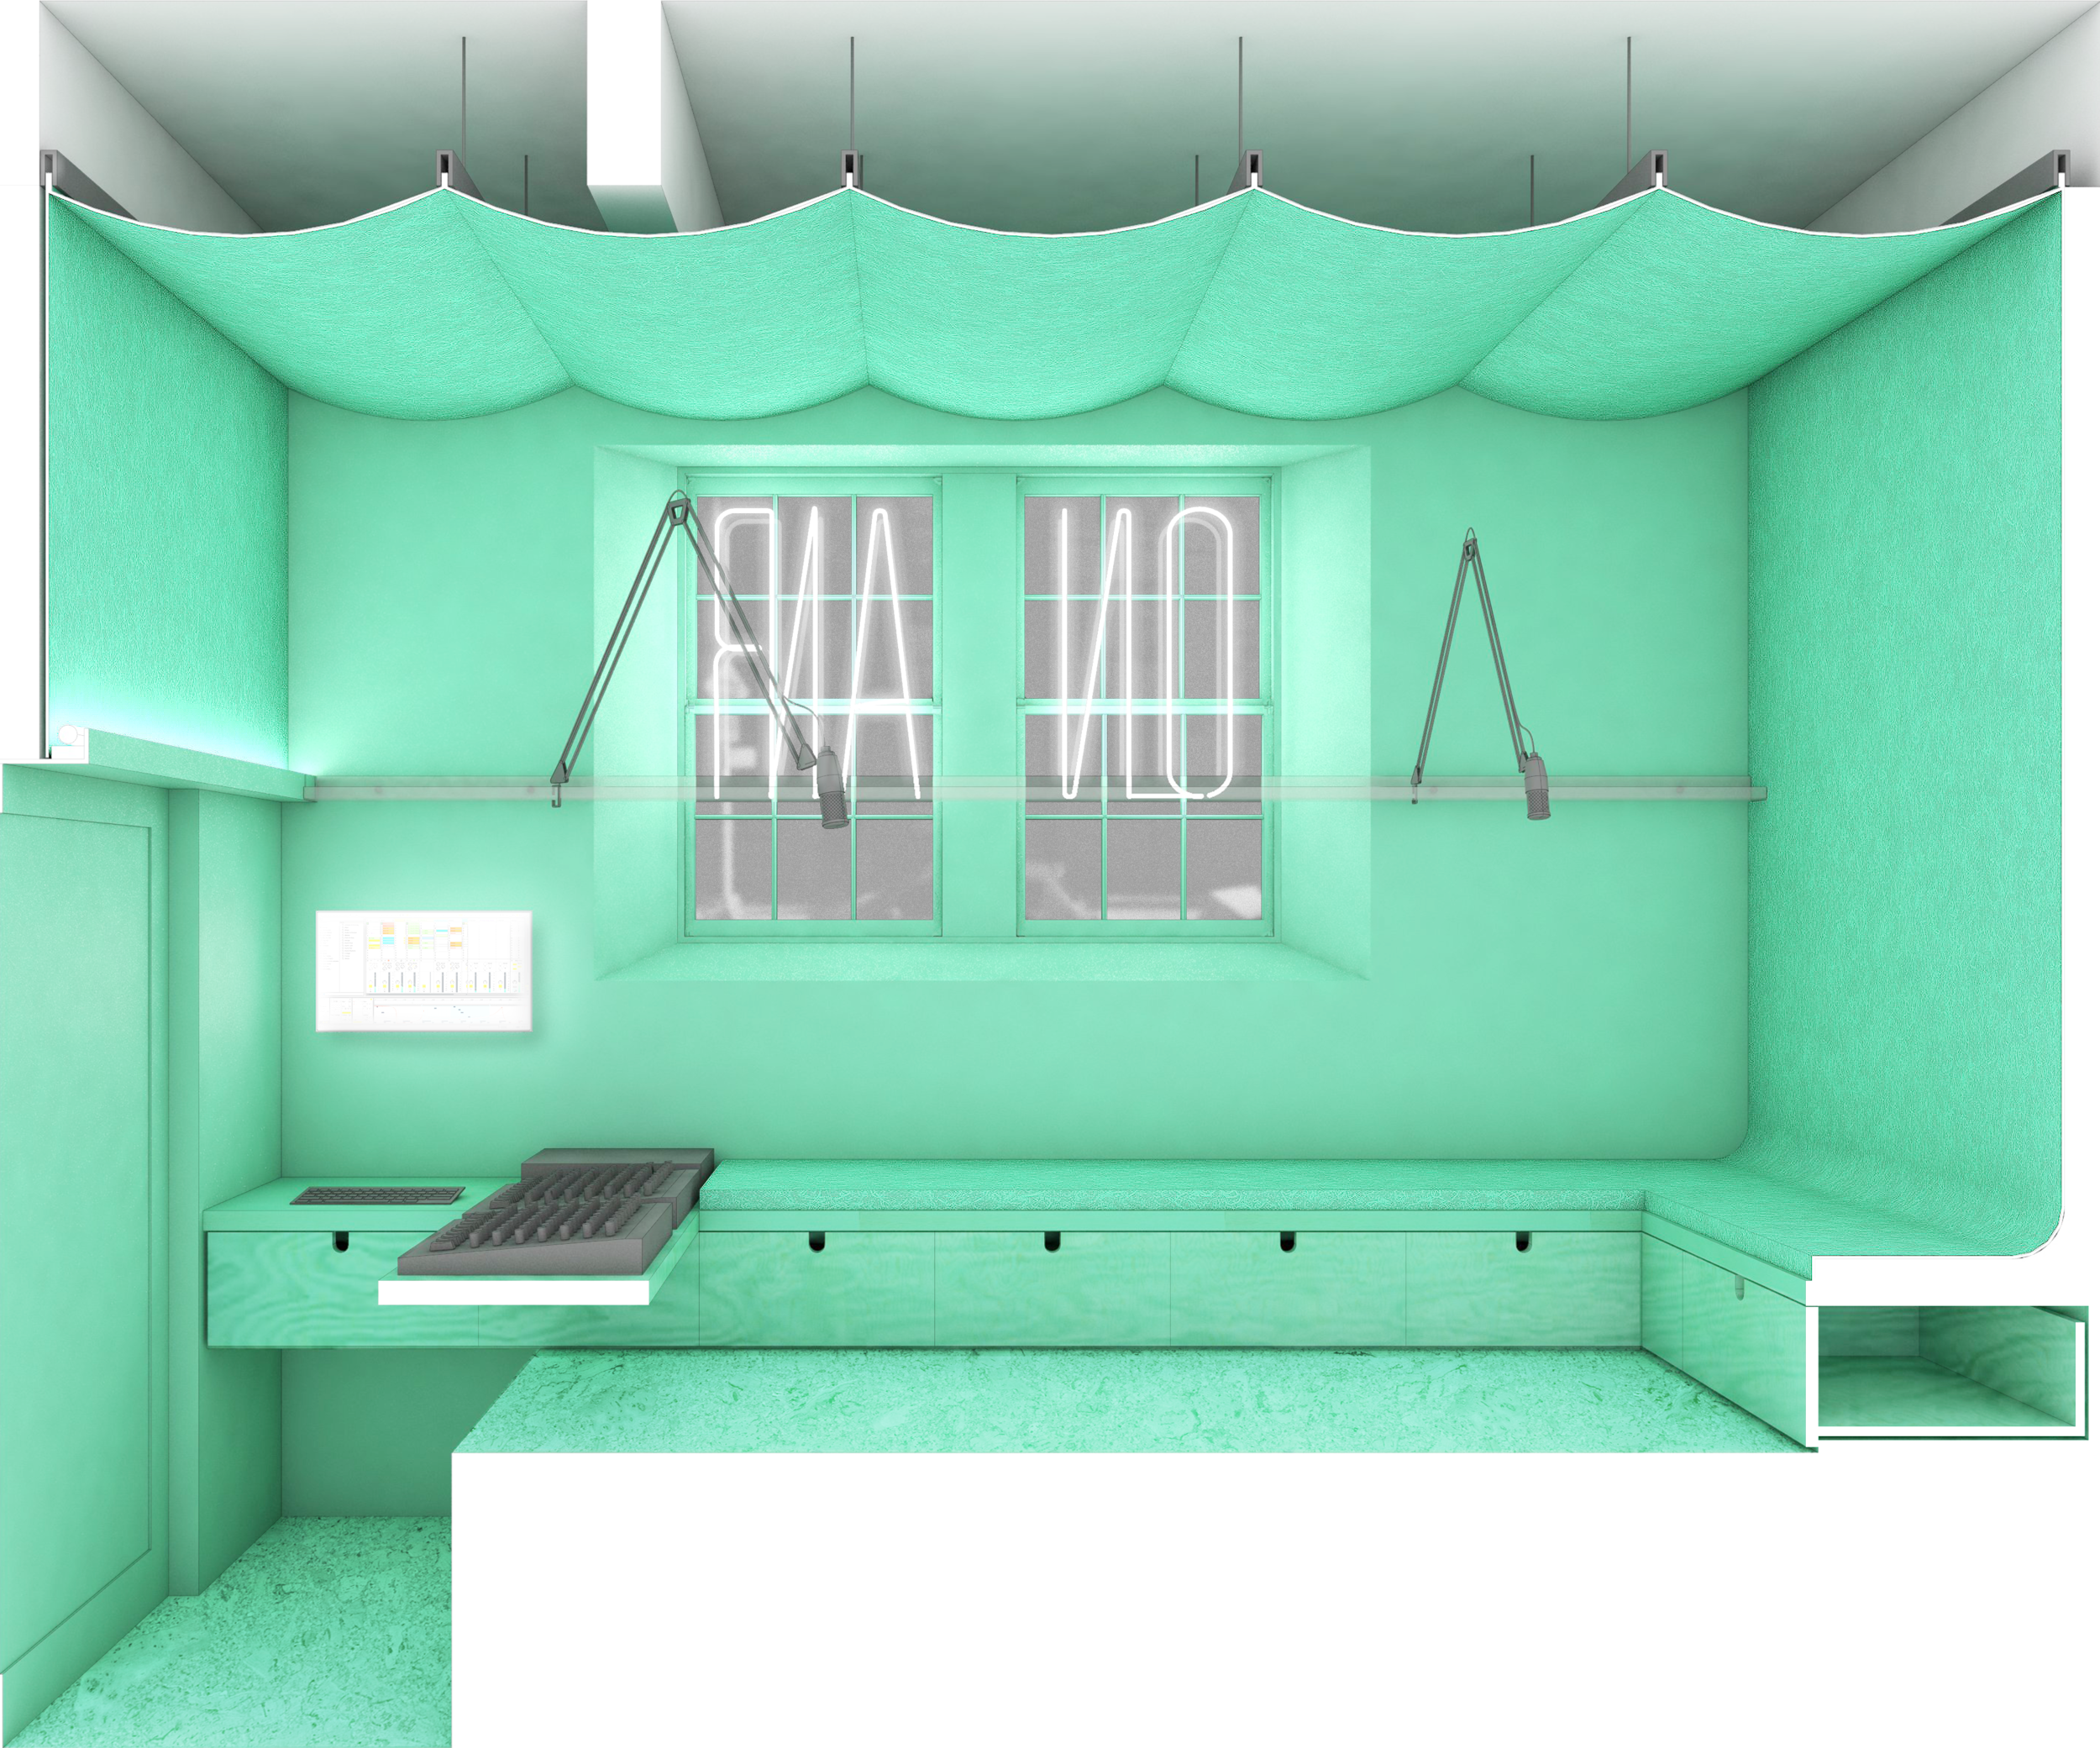 soundbooth render cutout.png